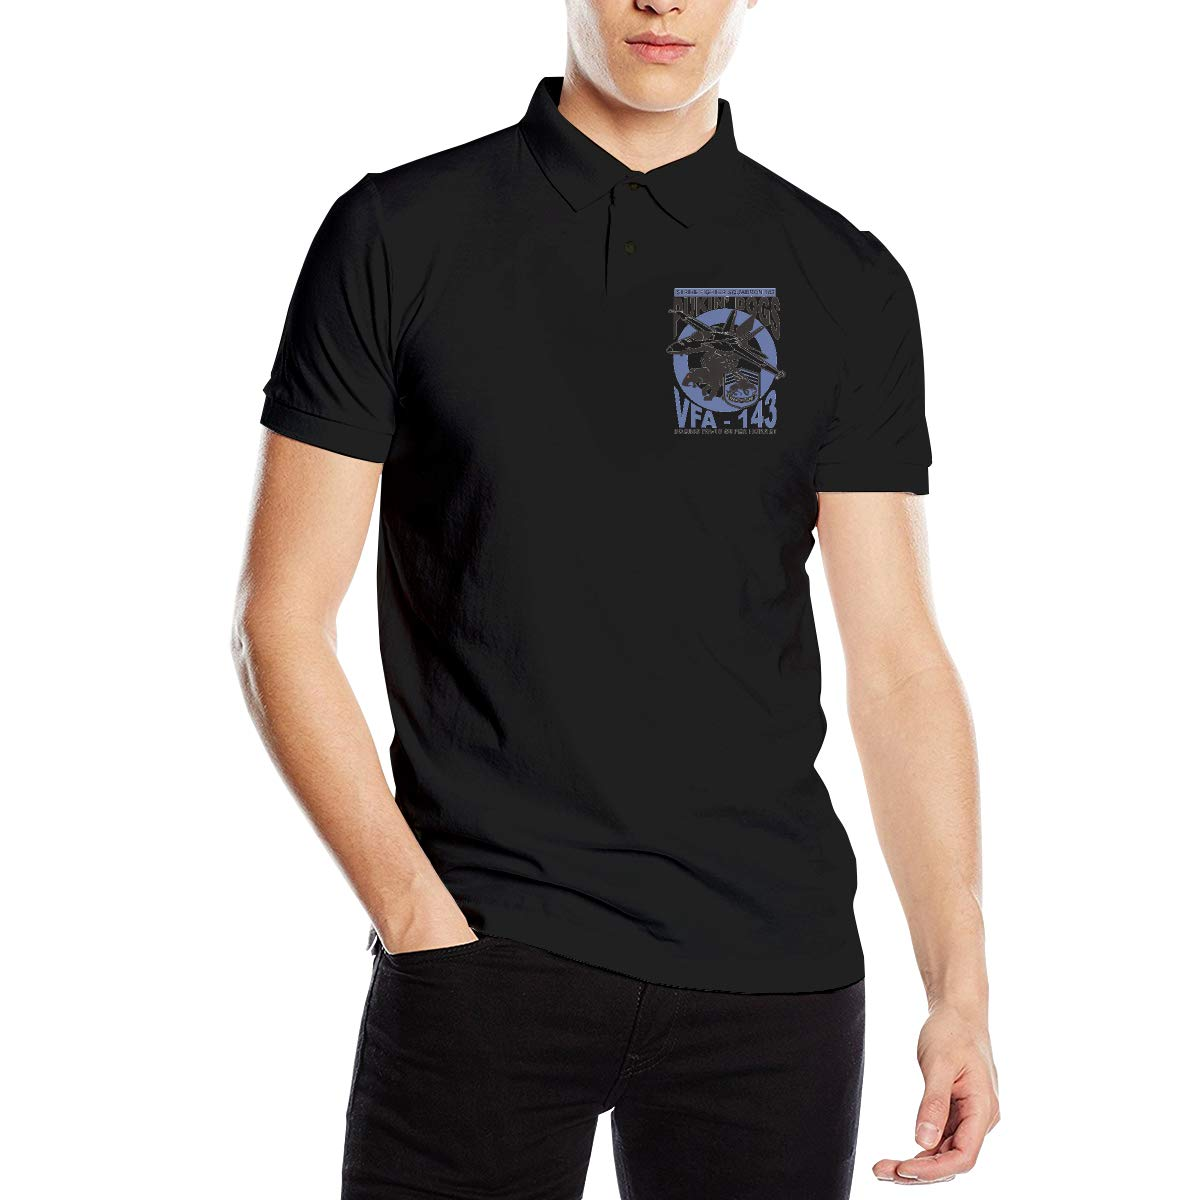 You Know And Good VFA-143 Pukin Dogs Mens Regular-Fit Cotton Polo Shirt Short Sleeve